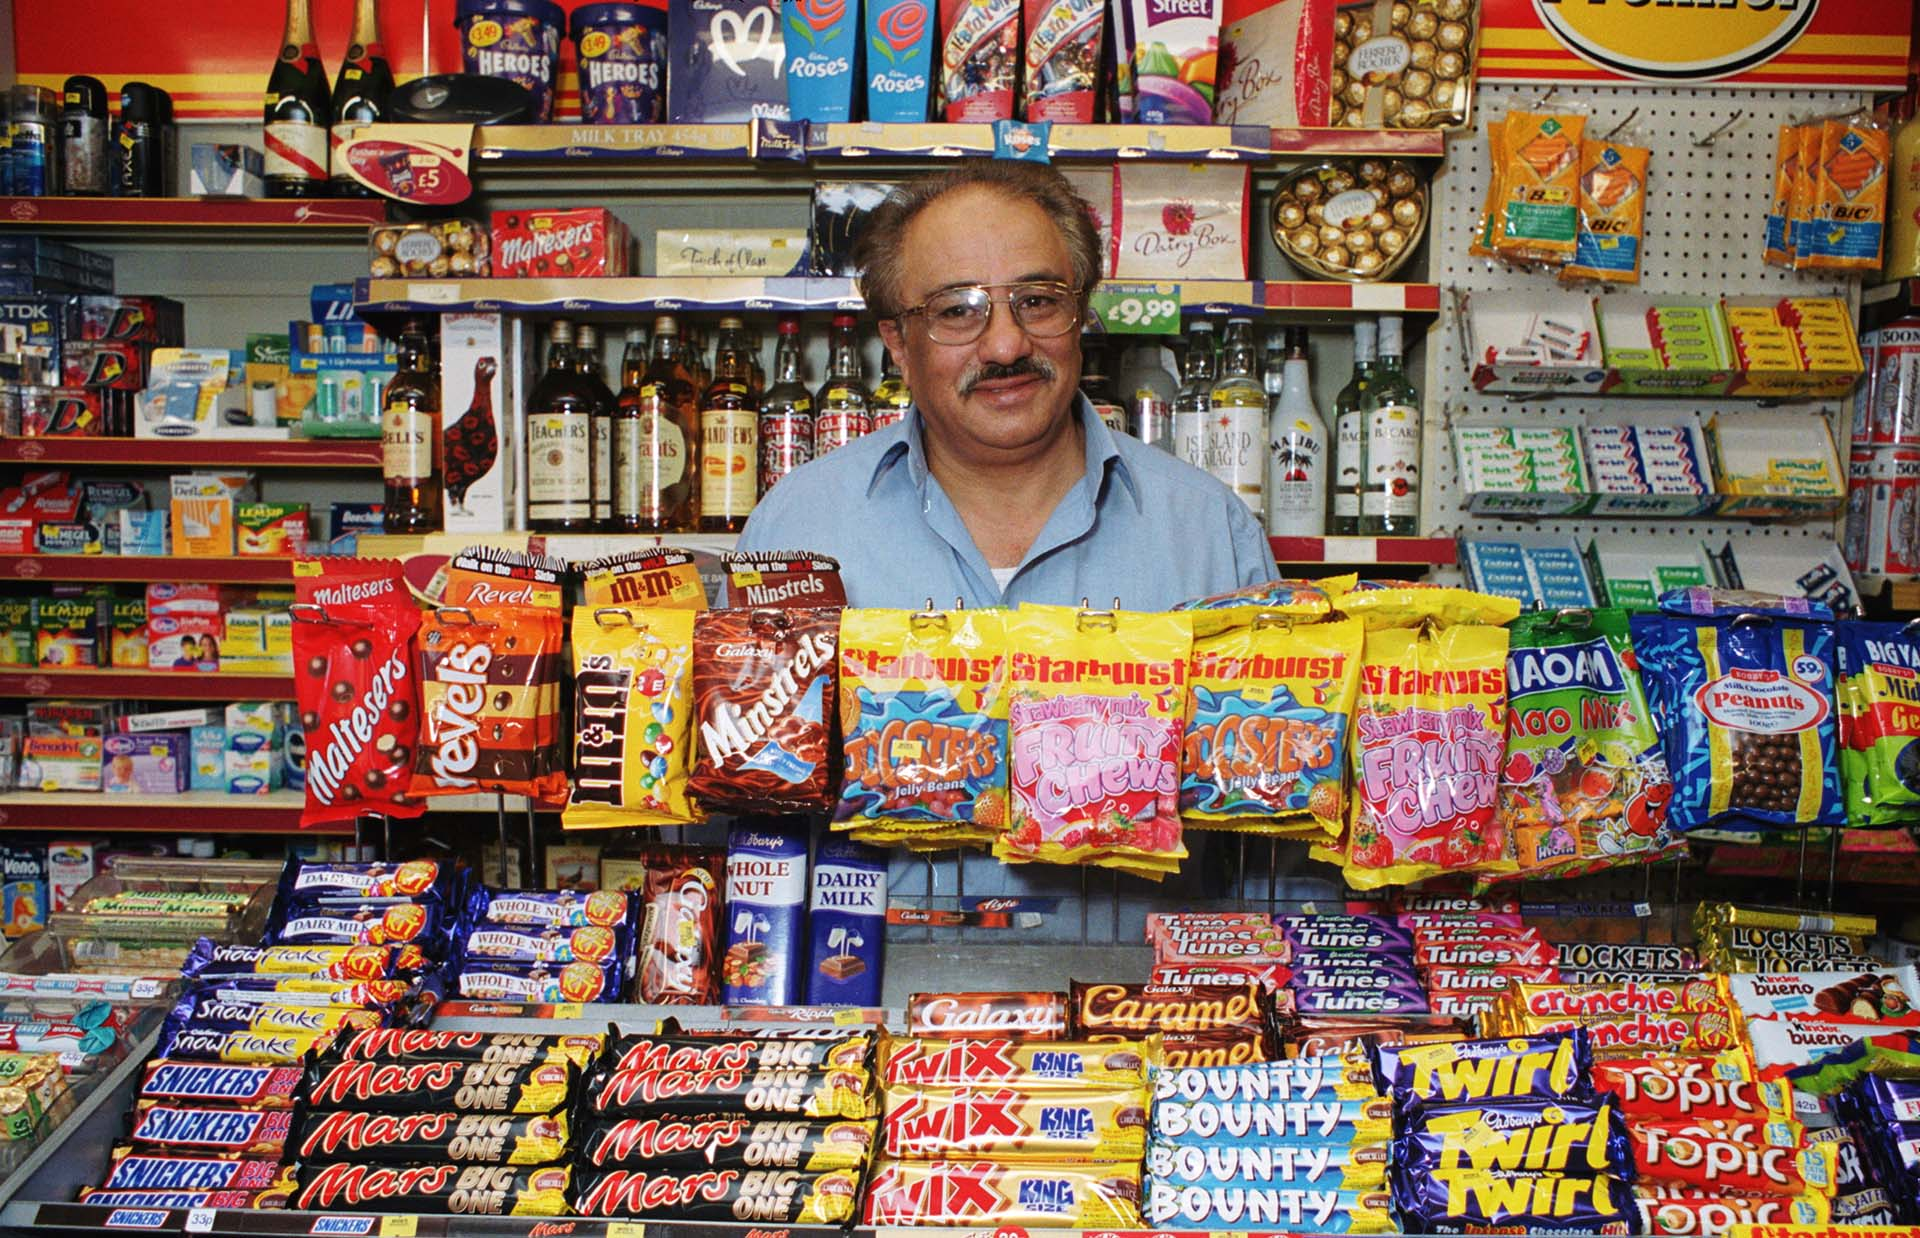 Photograph of corner shop owner sweet display colour photography Jon Parker Lee